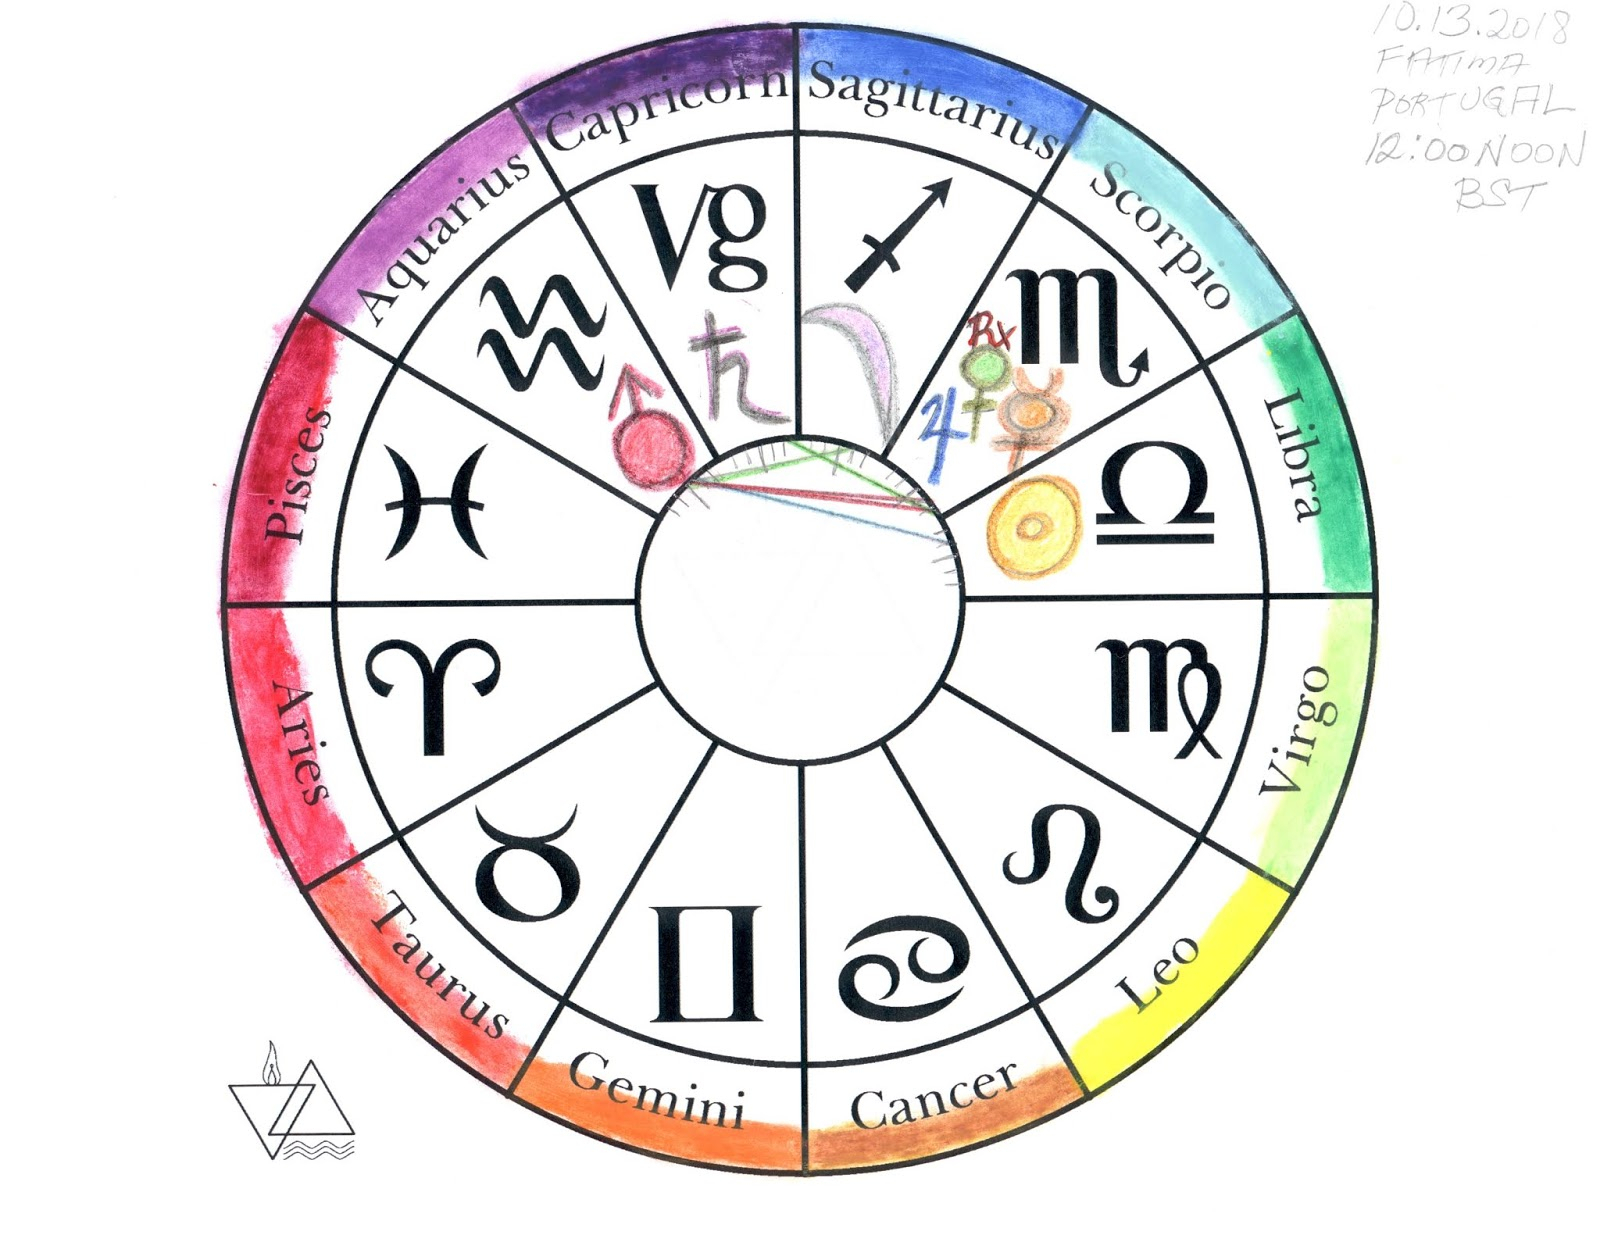 Readings By Rosemary ~Psychic Astrology intended for Hebrew Zodiac Calendar